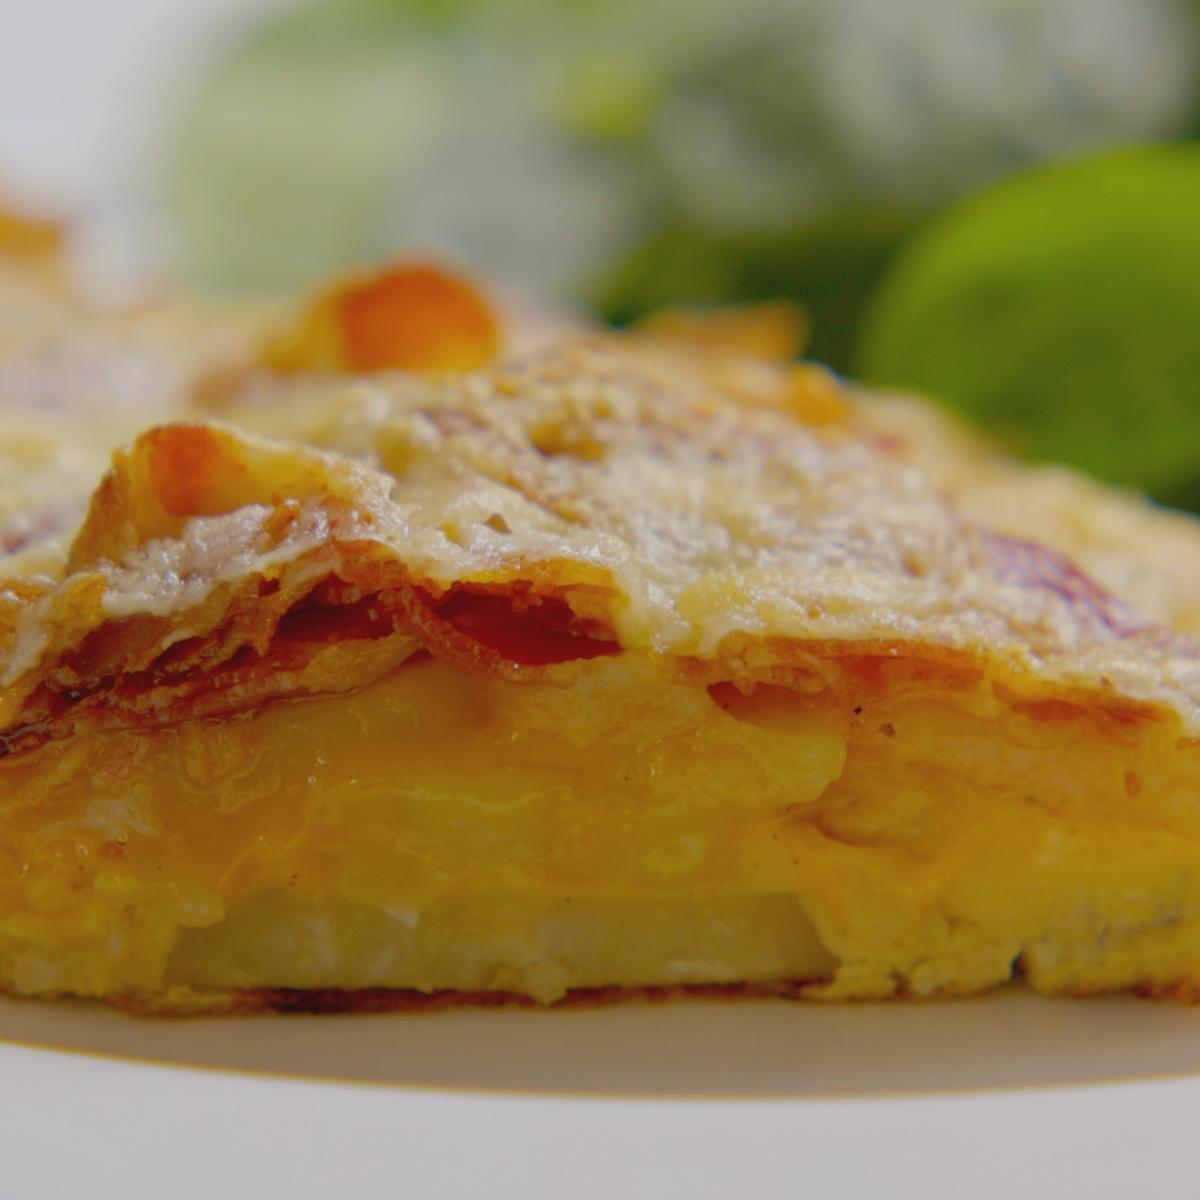 A picture of Delia's Omelette Savoyard recipe